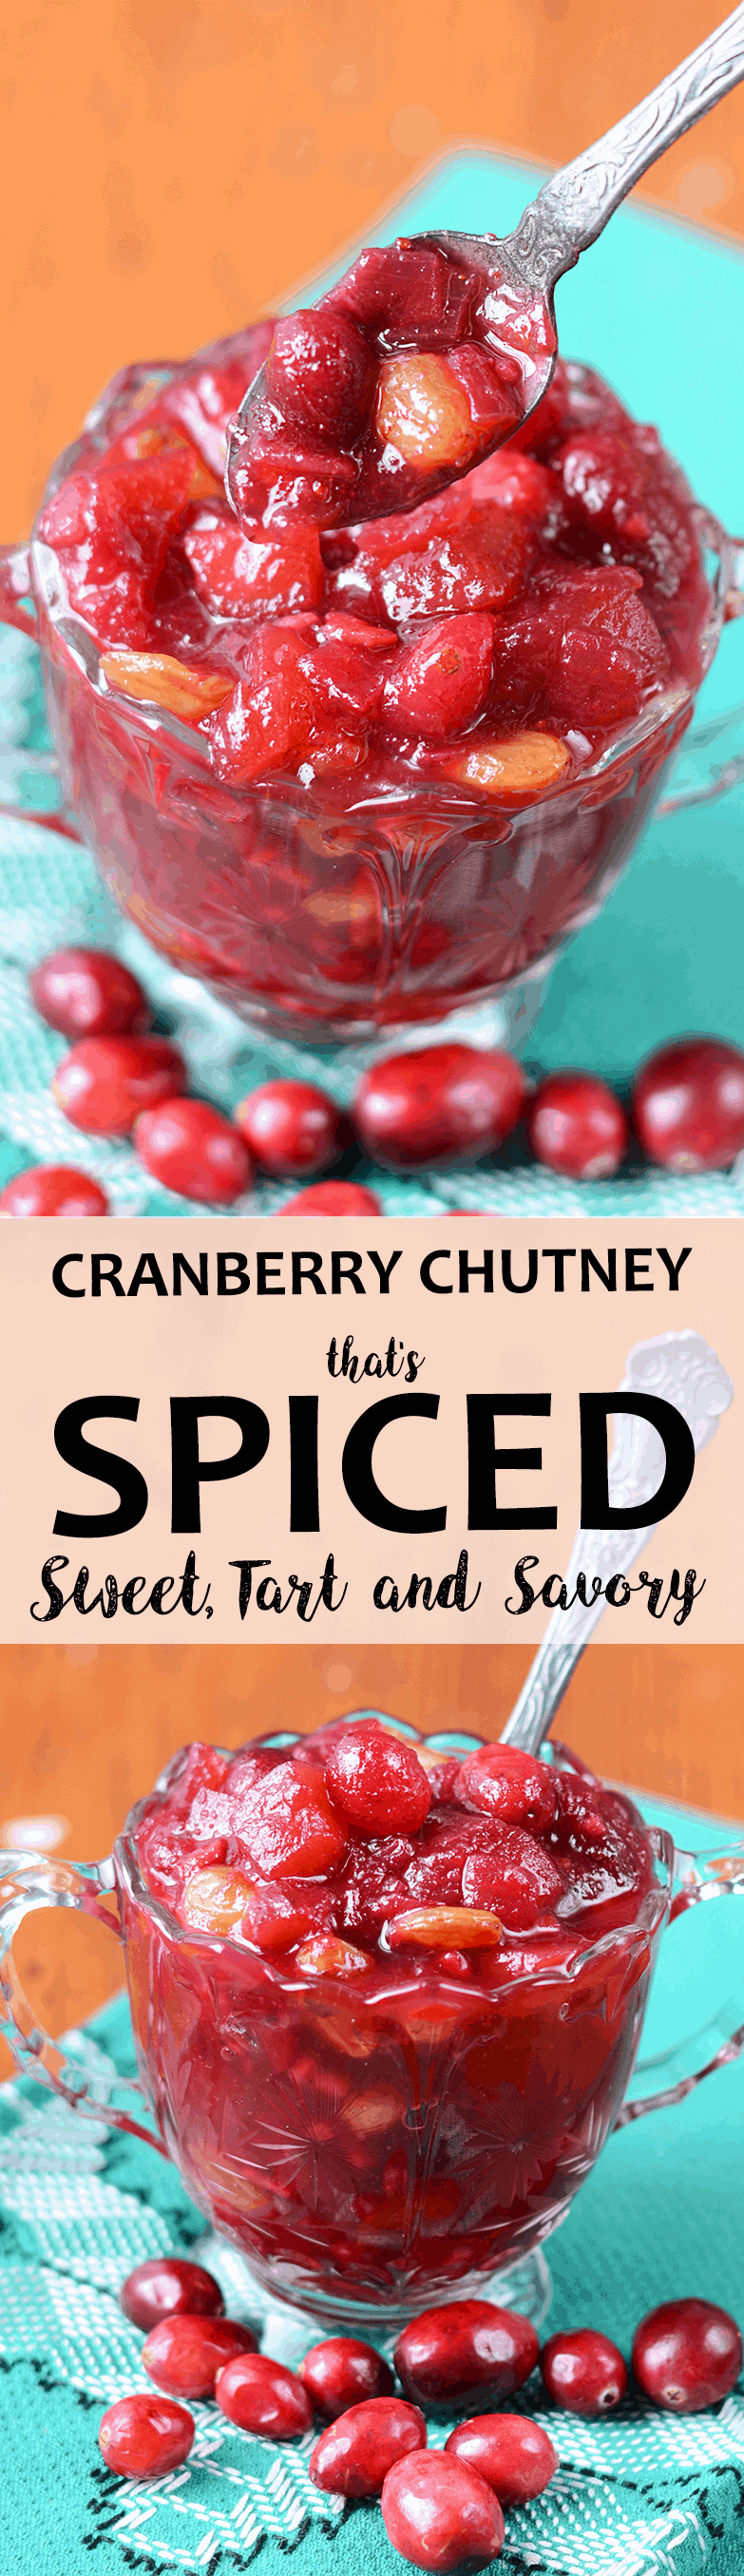 Cranberry Chutney Pin 1 - Cranberry Chutney with Apples, Raisins and Indian Spices